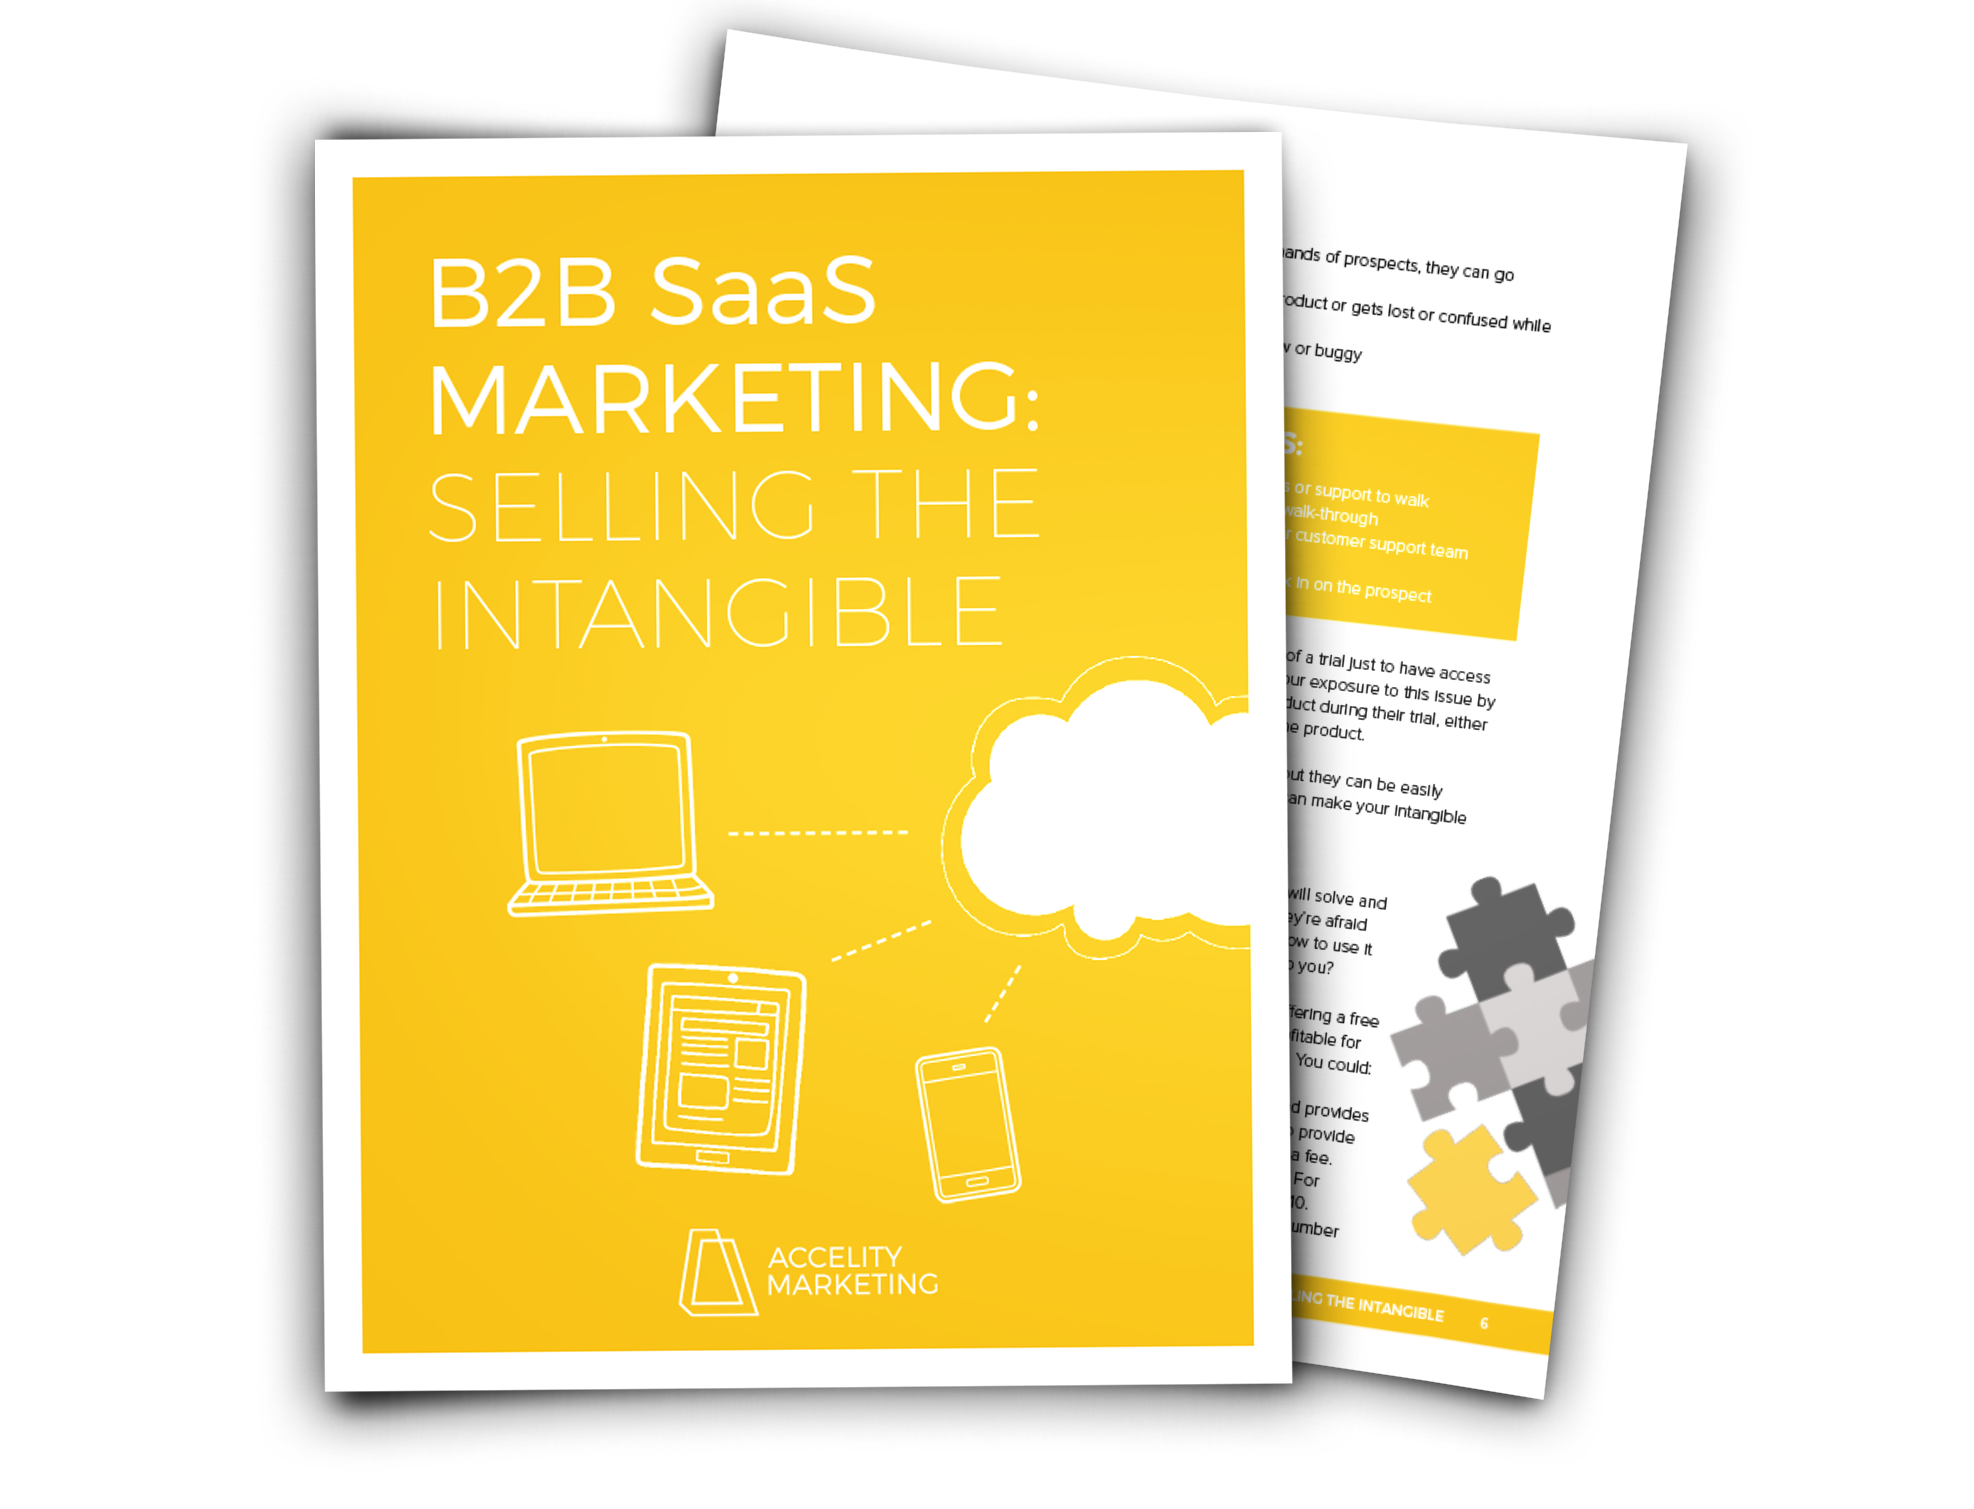 B2B SaaS Marketing: Selling the Intangible